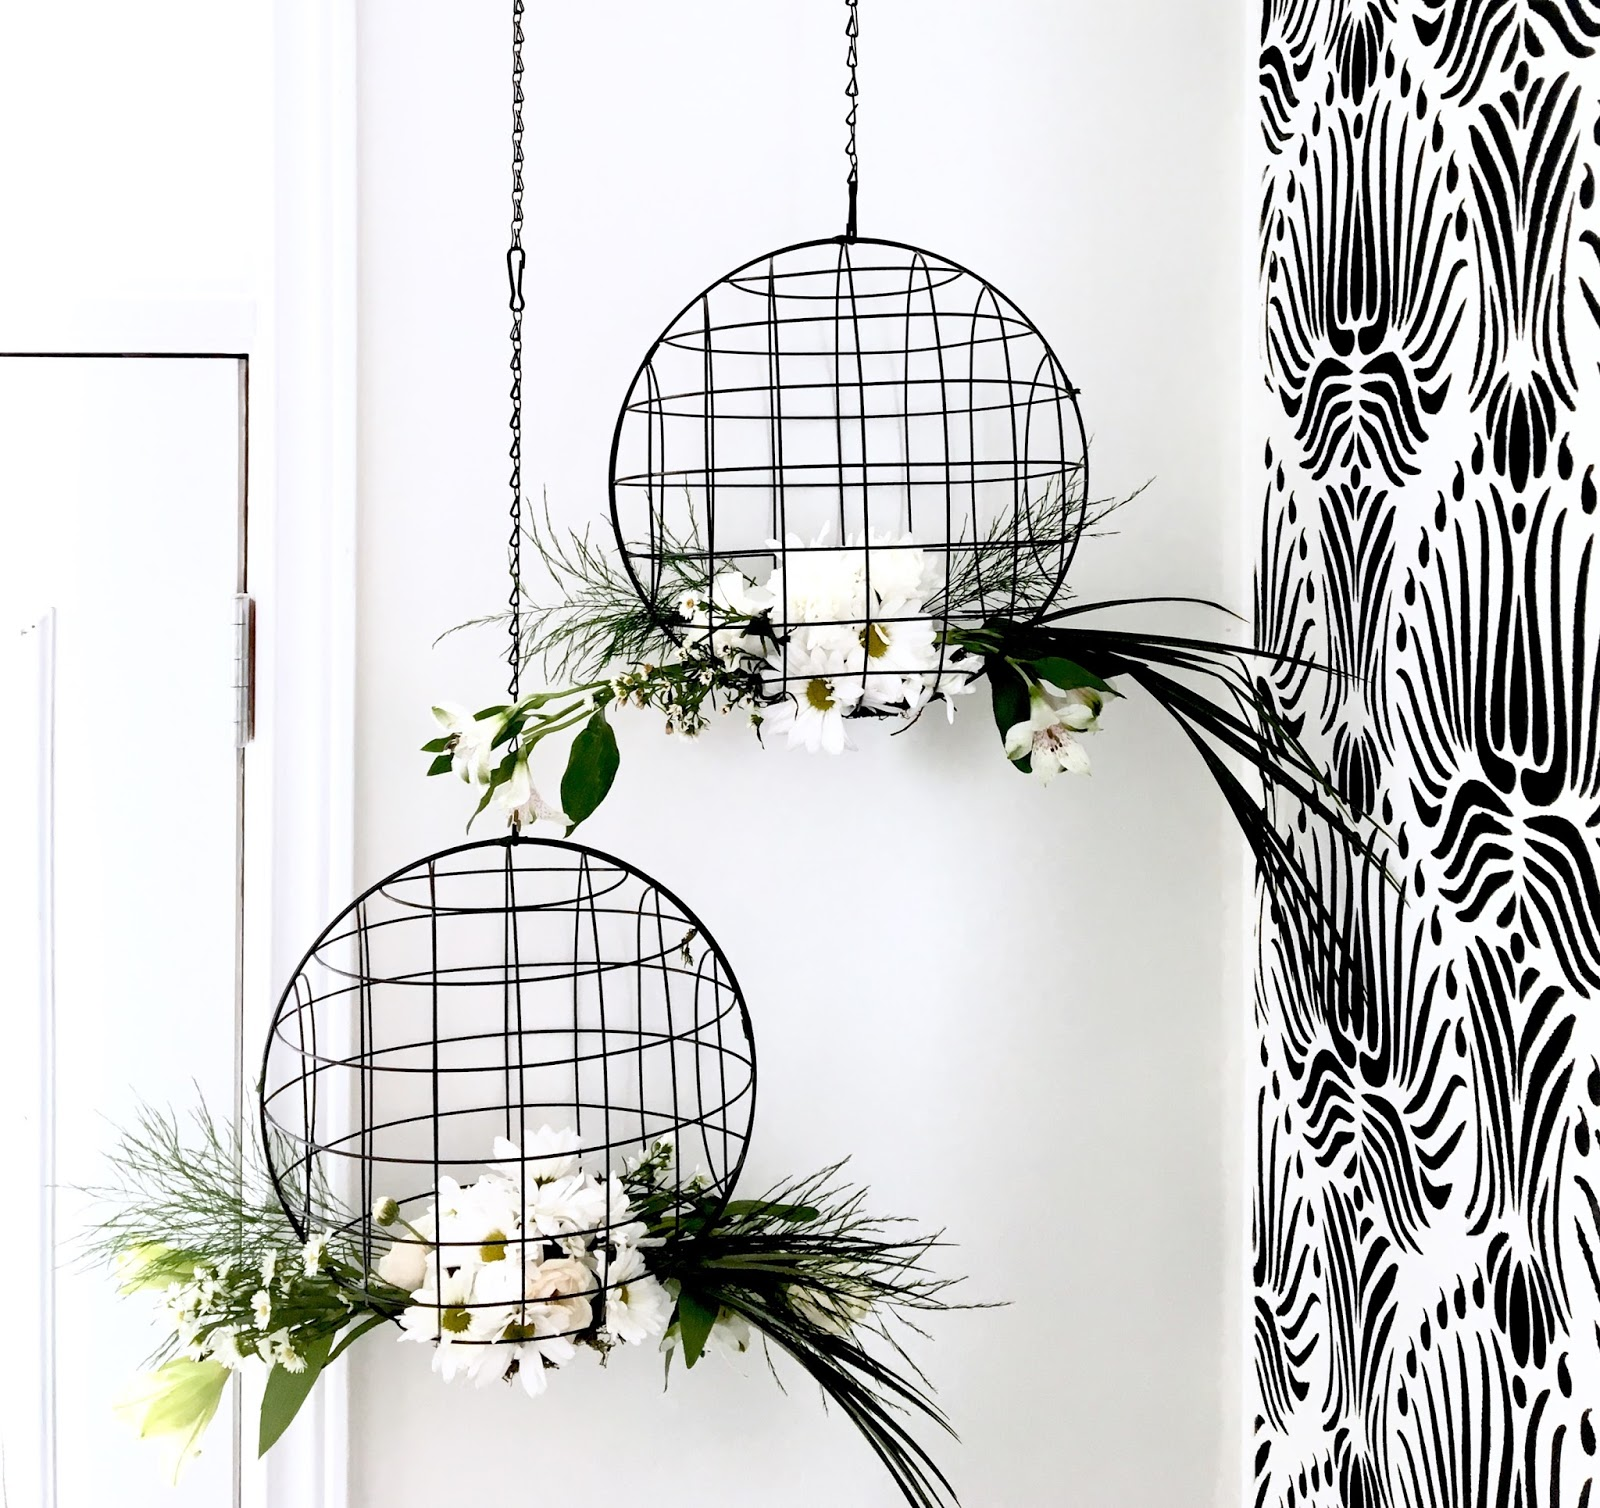 Diy floral chandelier harlow thistle home design lifestyle diy diy floral chandelier harlow and thistle 1 aloadofball Image collections